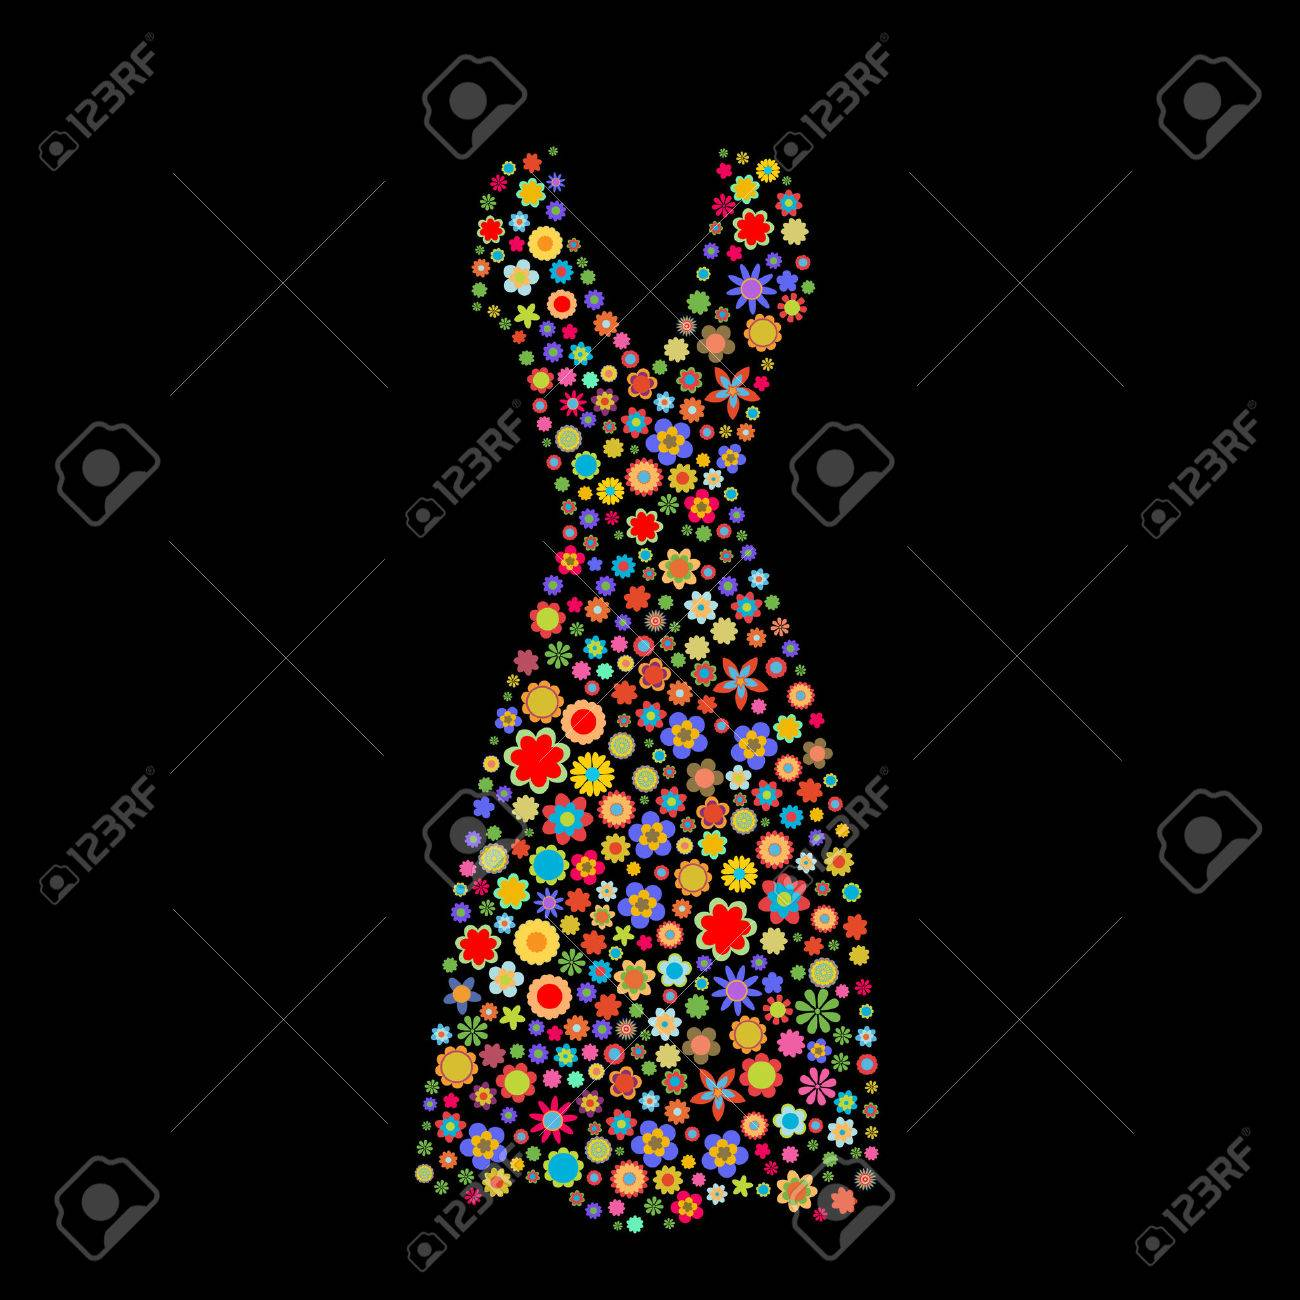 Vector illustration of women dress shape  made up a lot of  multicolored small flowers on the black background Stock Vector - 4002792